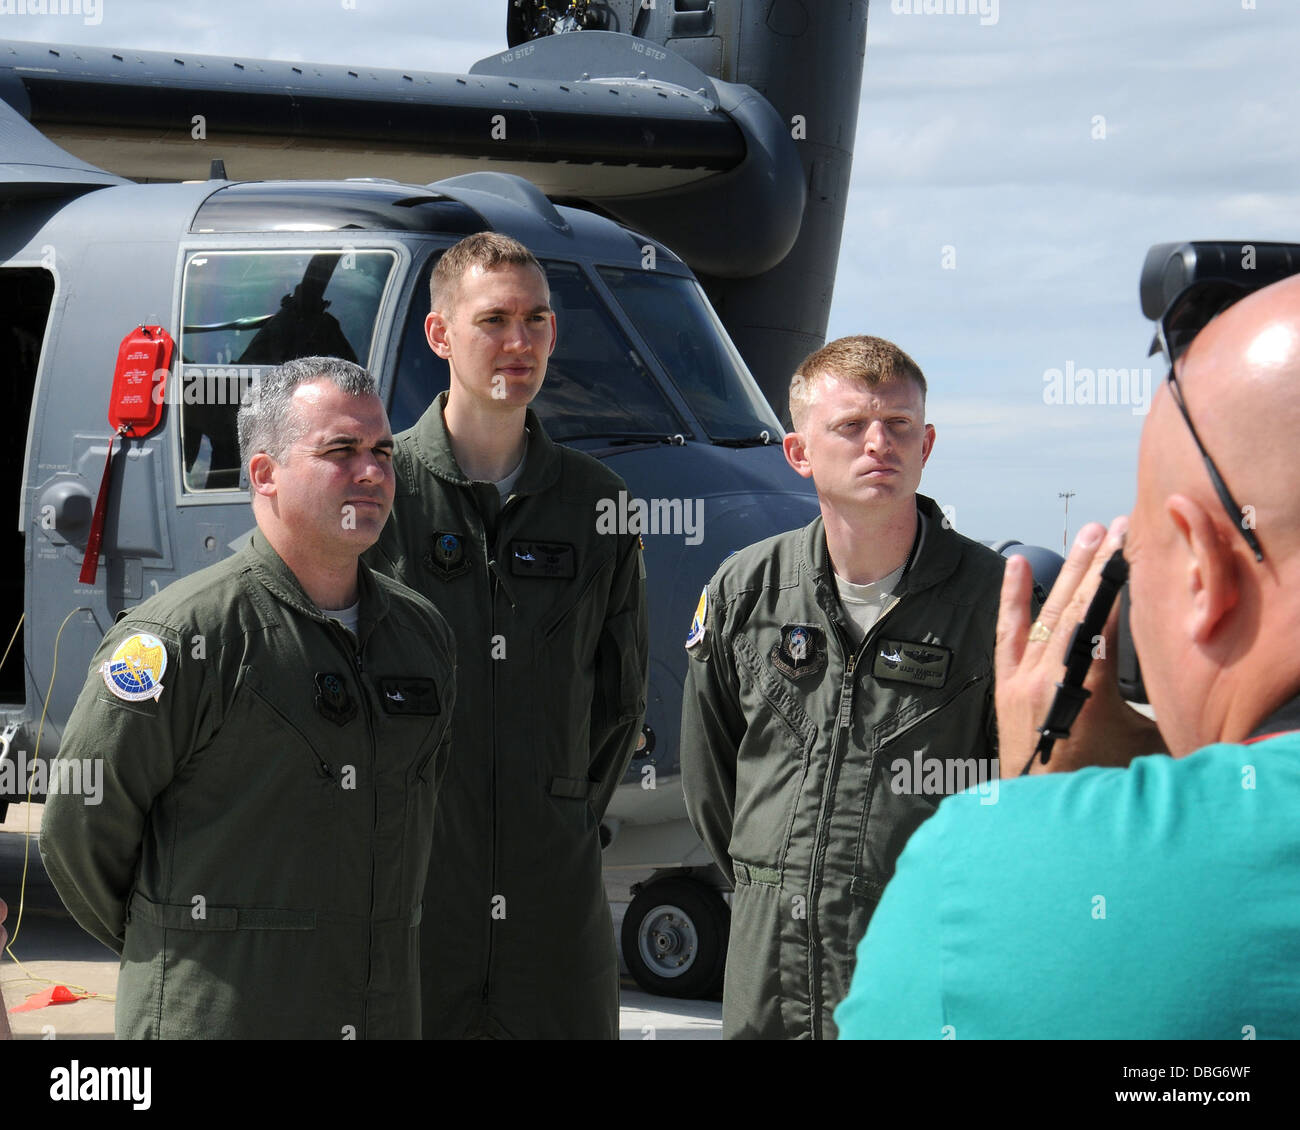 Aircrew members from the 7th Special Operations Squadron pose for photographs from members of the media during a - Stock Image